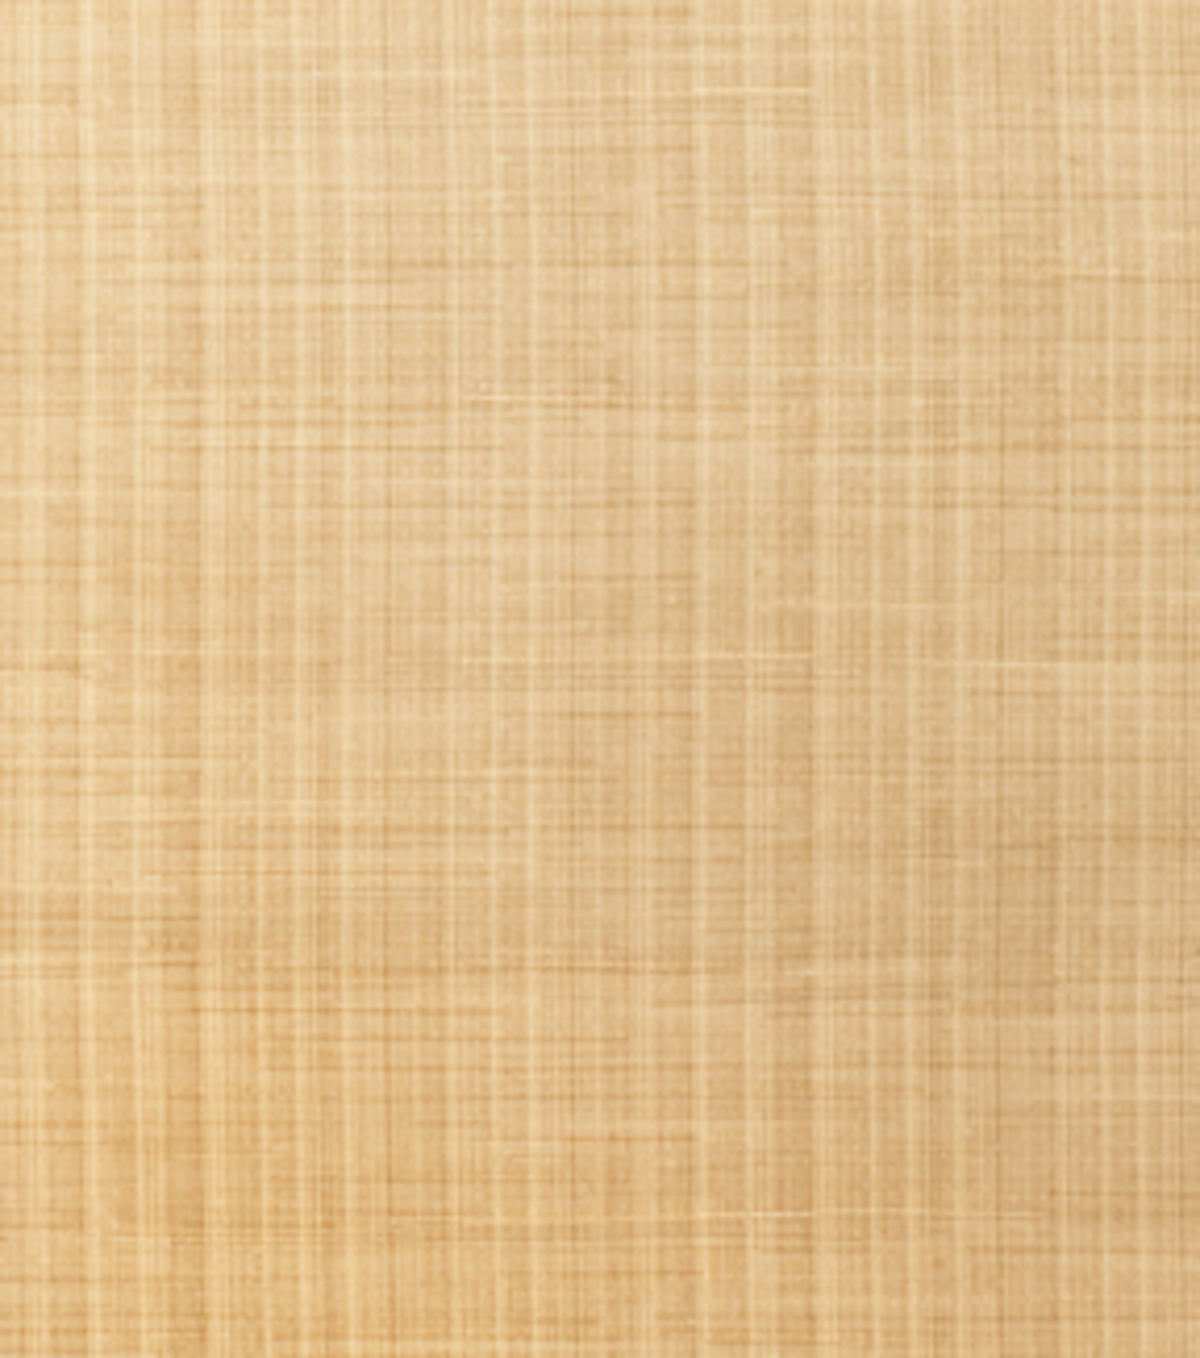 Home Decor 8\u0022x8\u0022 Fabric Swatch-Eaton Square Cargo /  Maize